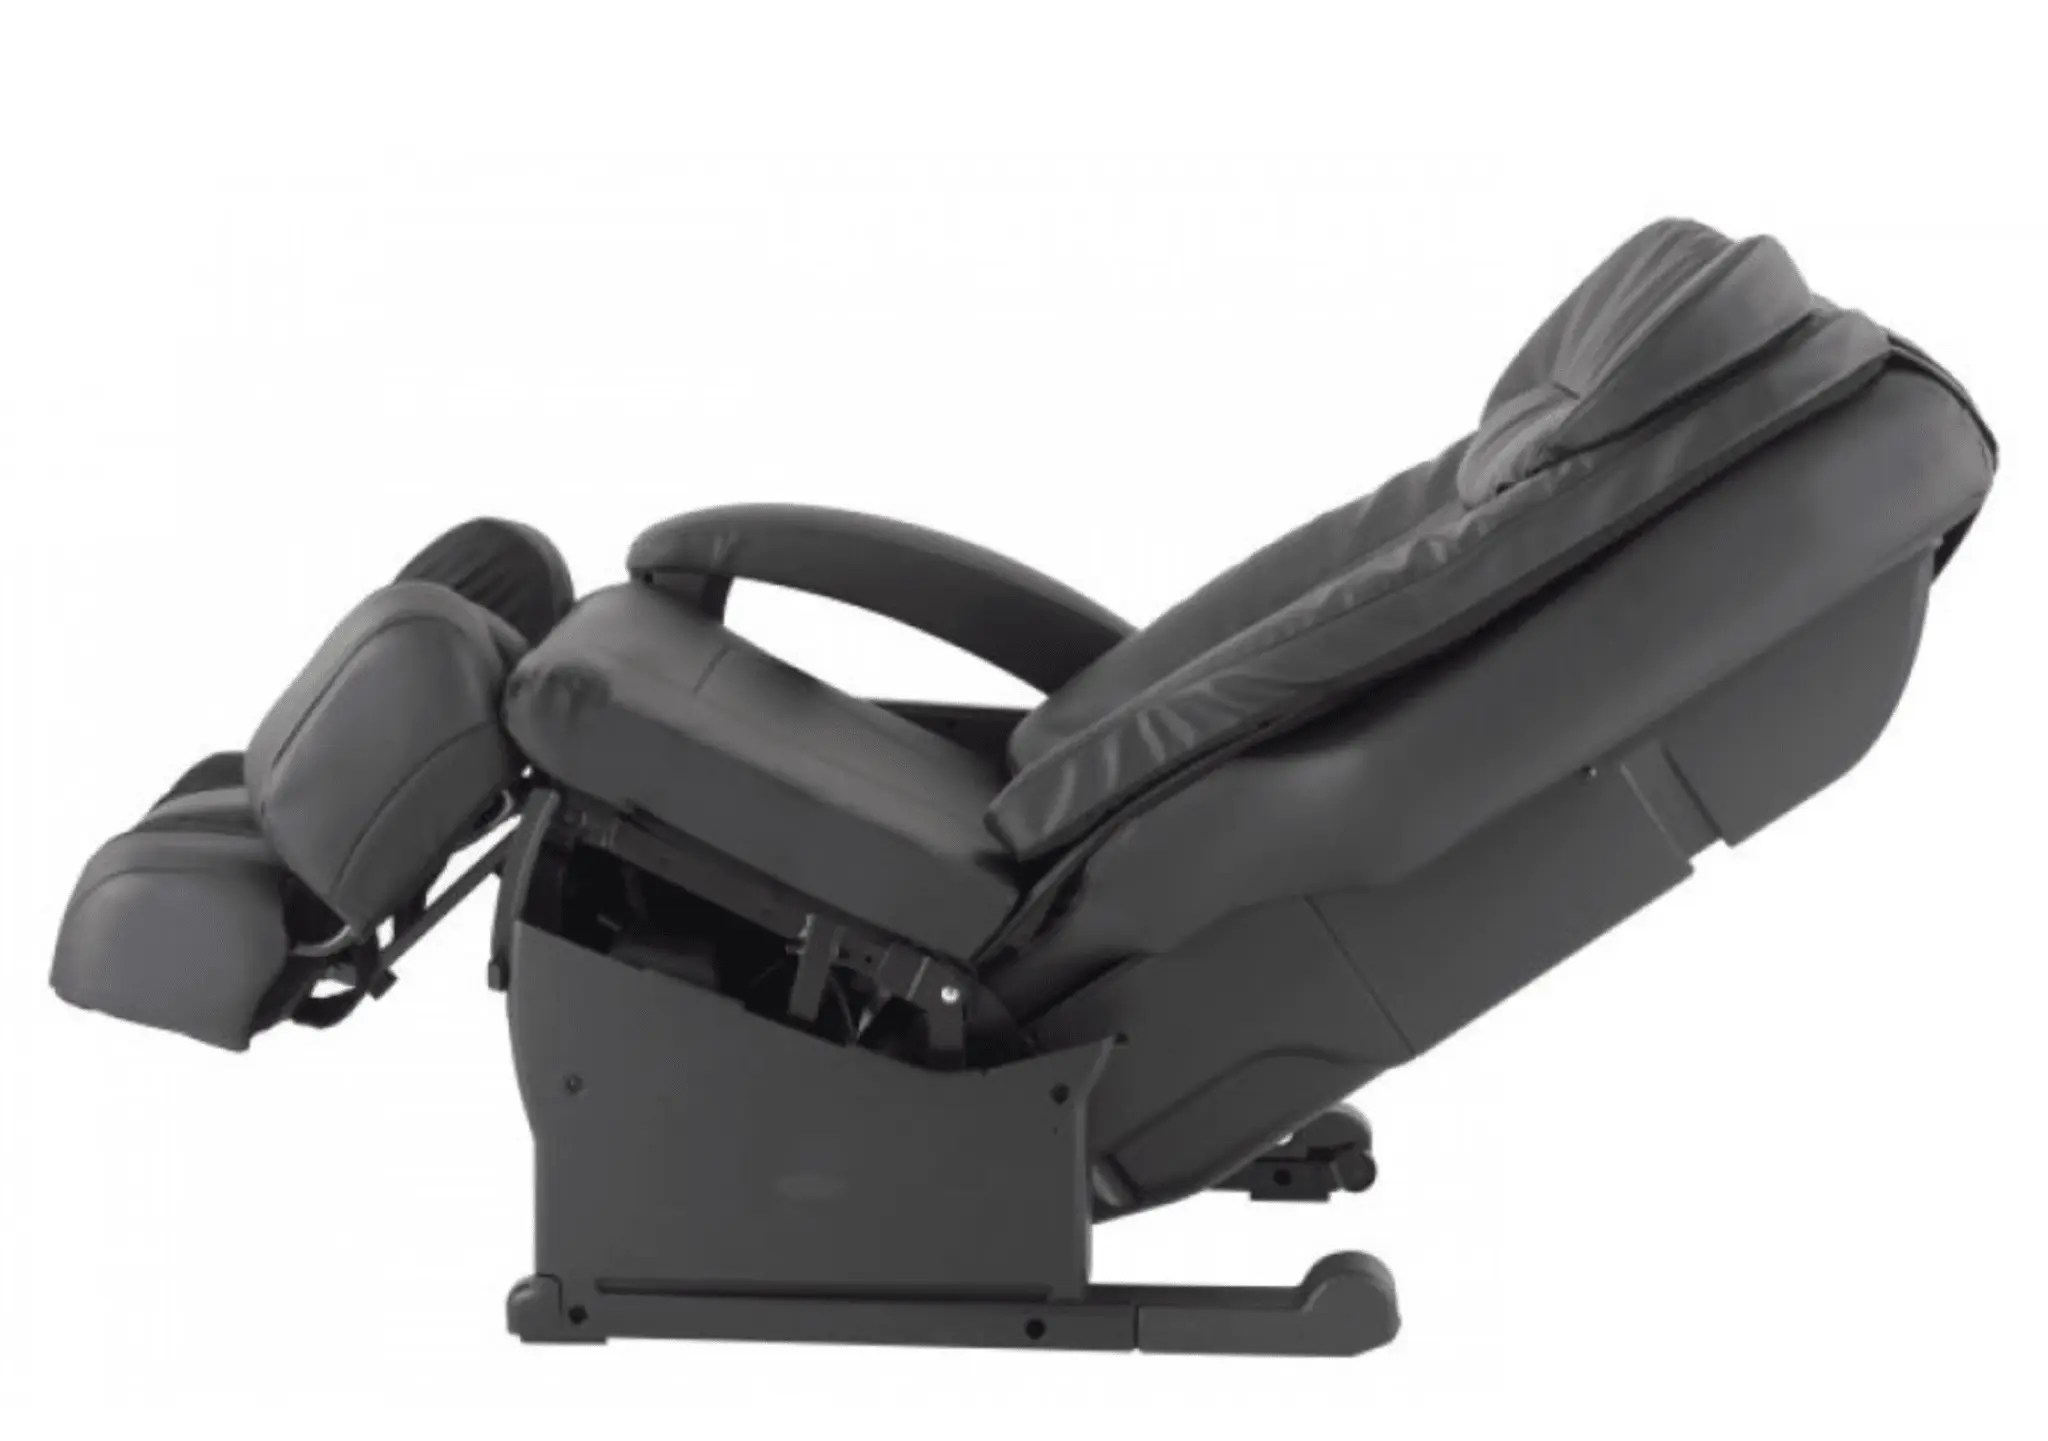 sanyo massage chair diy slipcover no sew dr5700 body shop